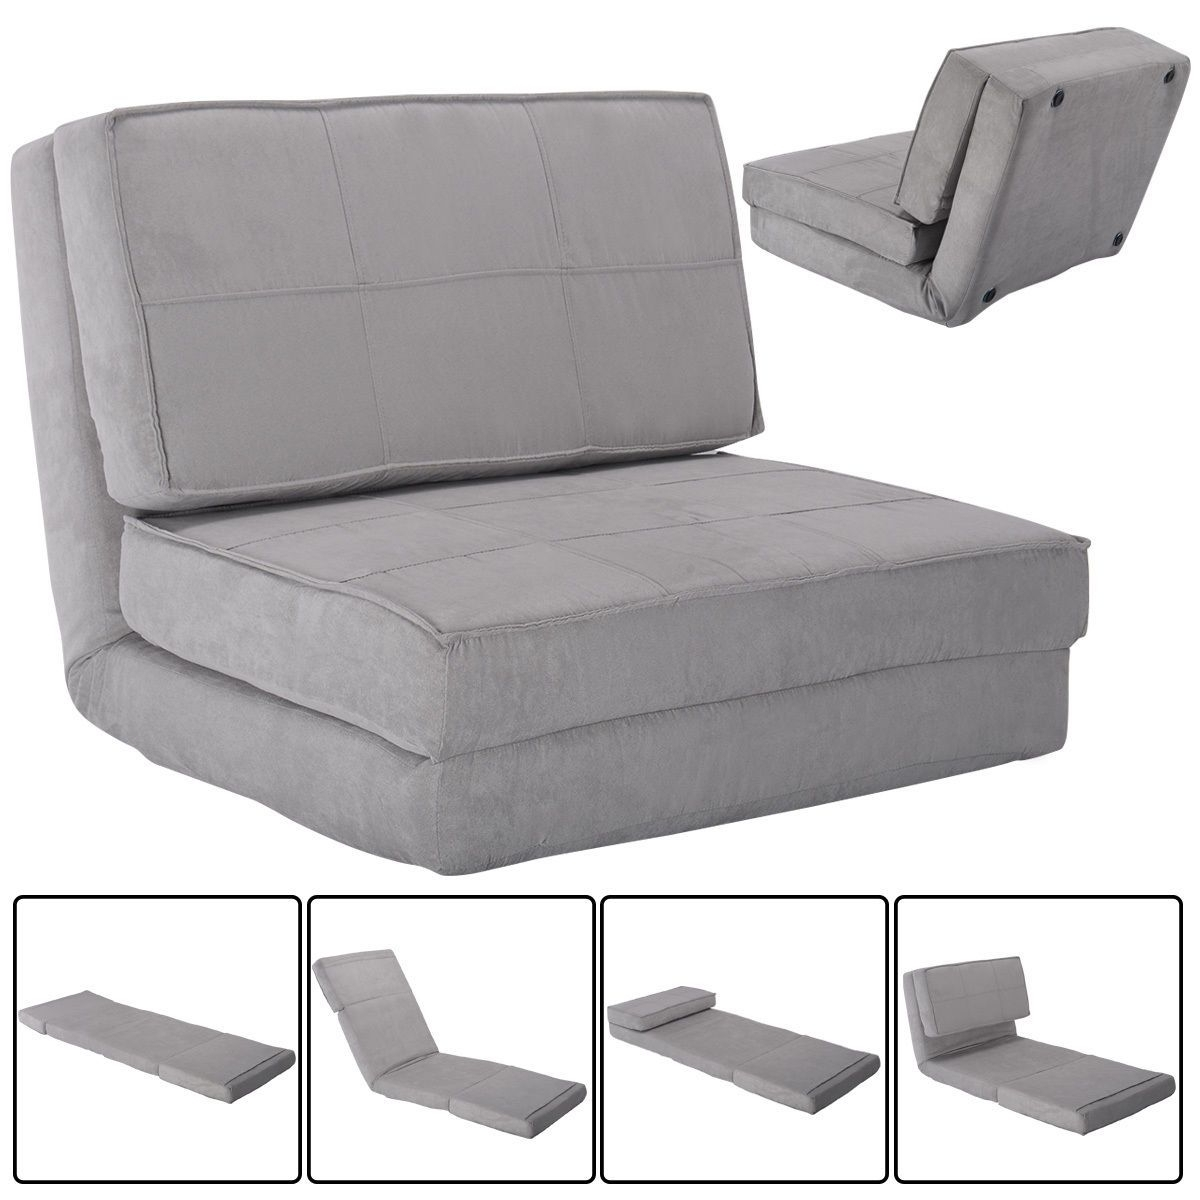 Famous Folding Sofa Chairs Intended For Convertible Lounger Folding Sofa Sleeper Bed (View 6 of 20)